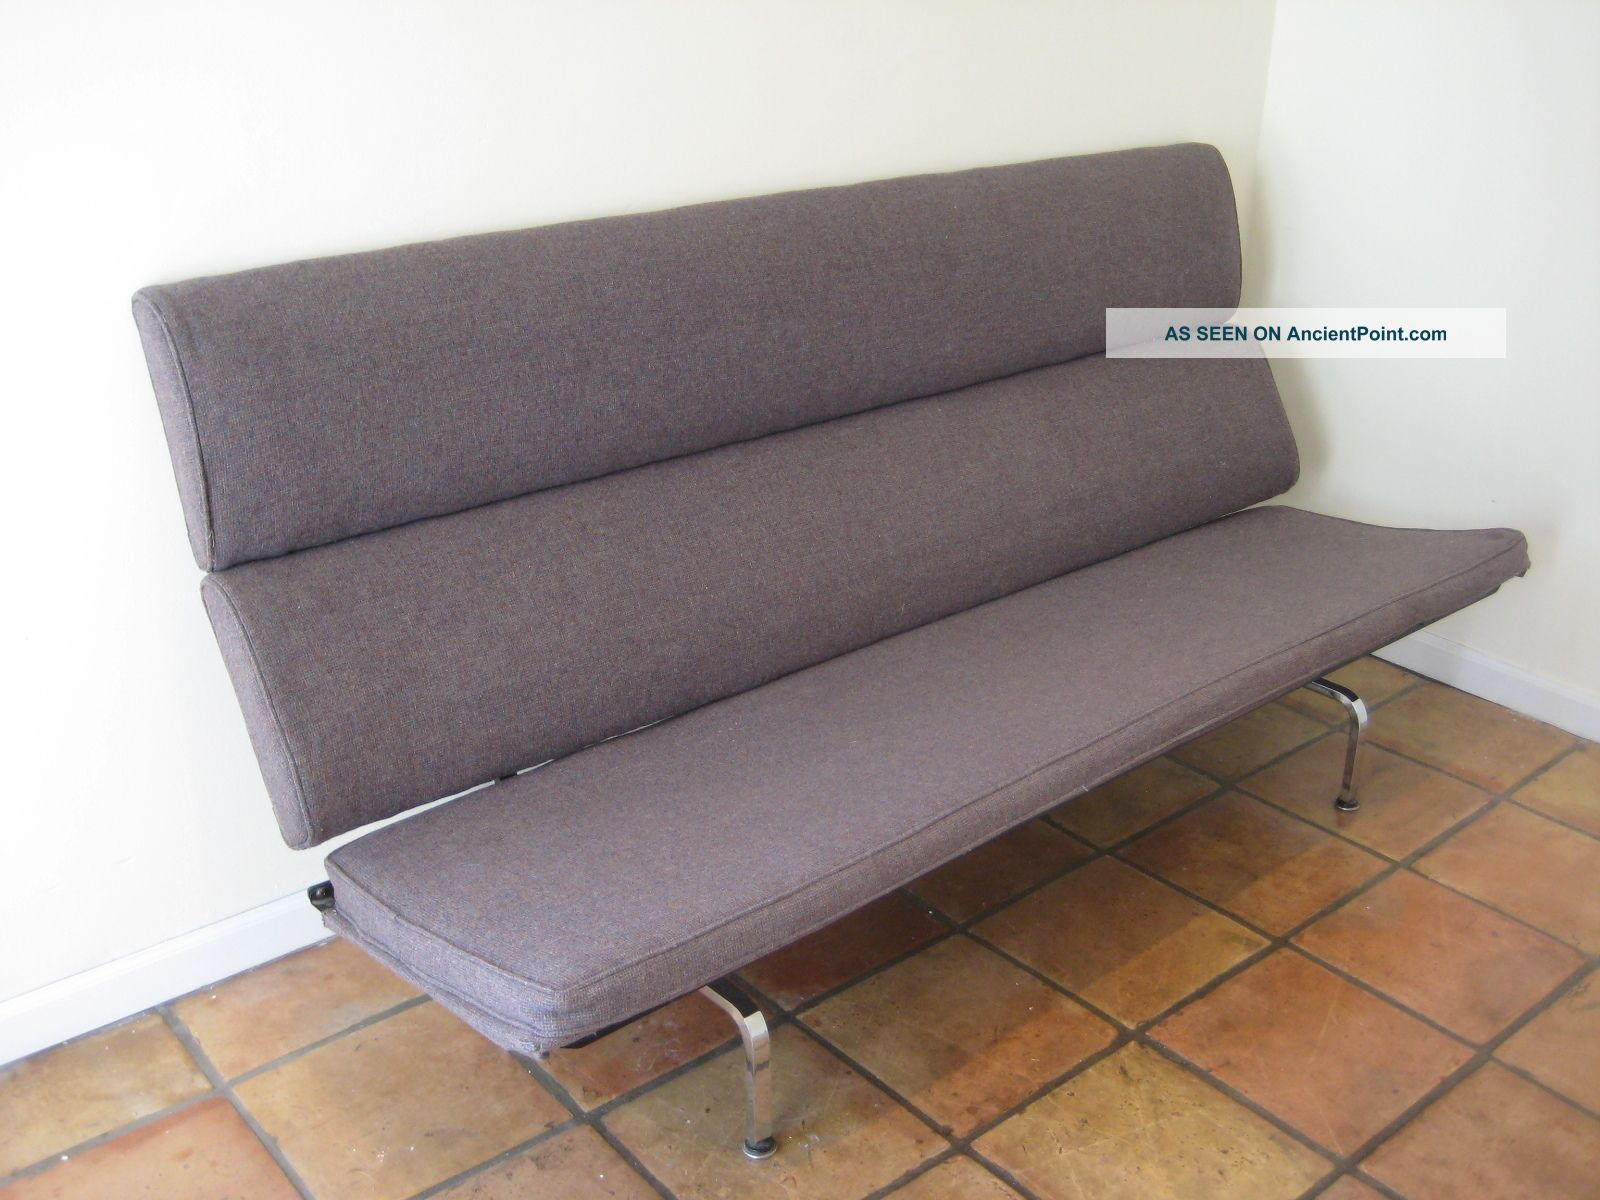 Eames compact sofa replica interior design decorating for Design sofa replica